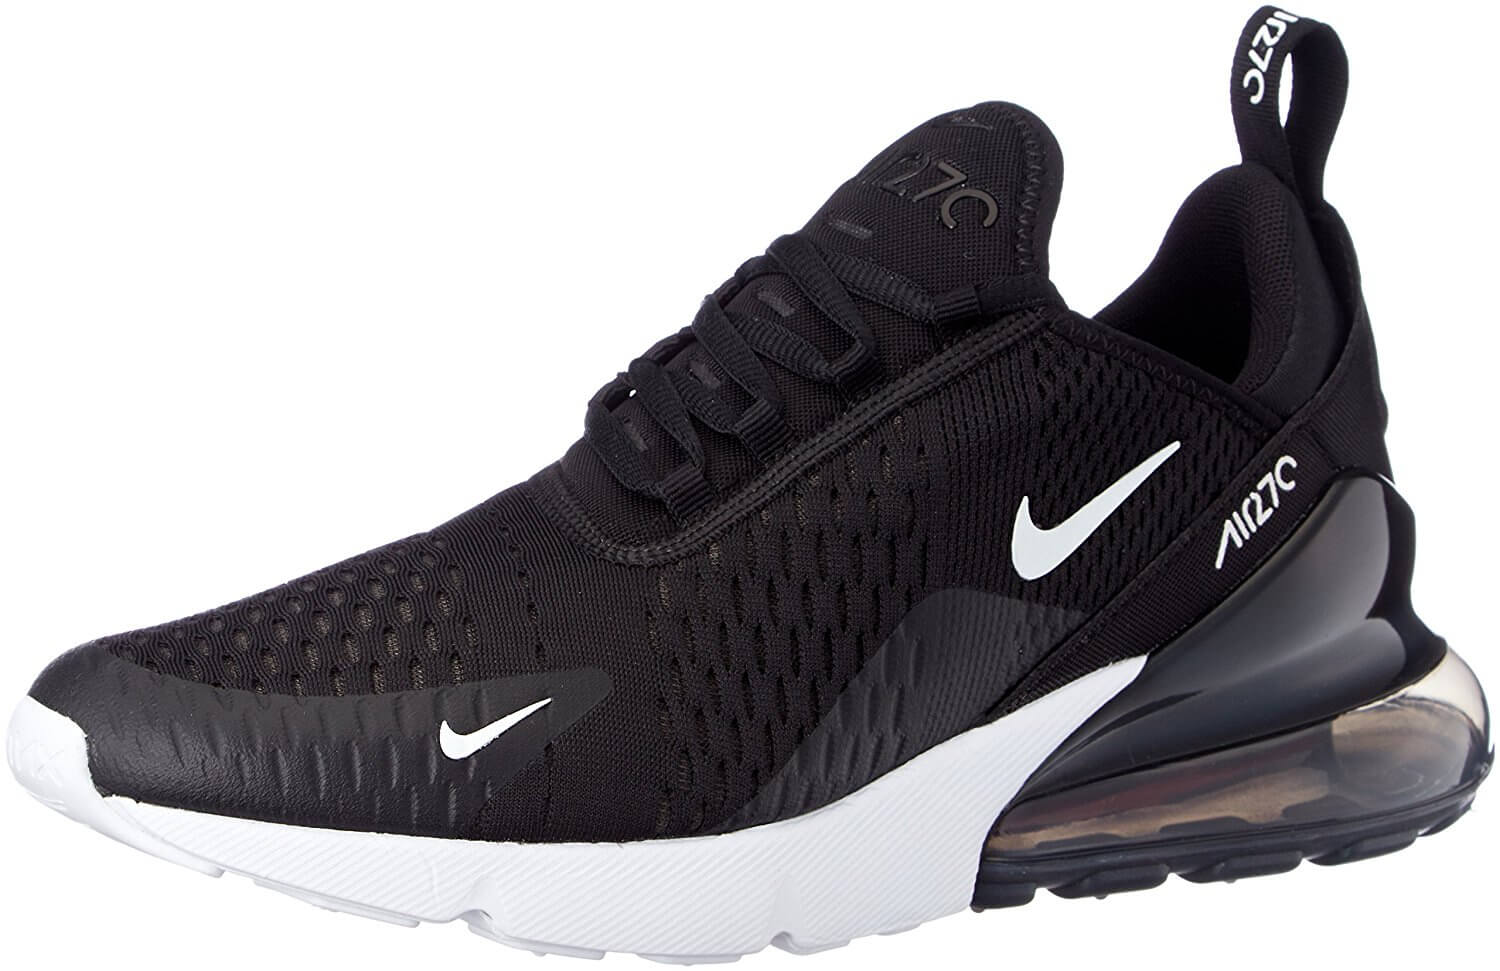 Nike Air Max 270 Reviewed - To Buy or Not in Aug 2019?